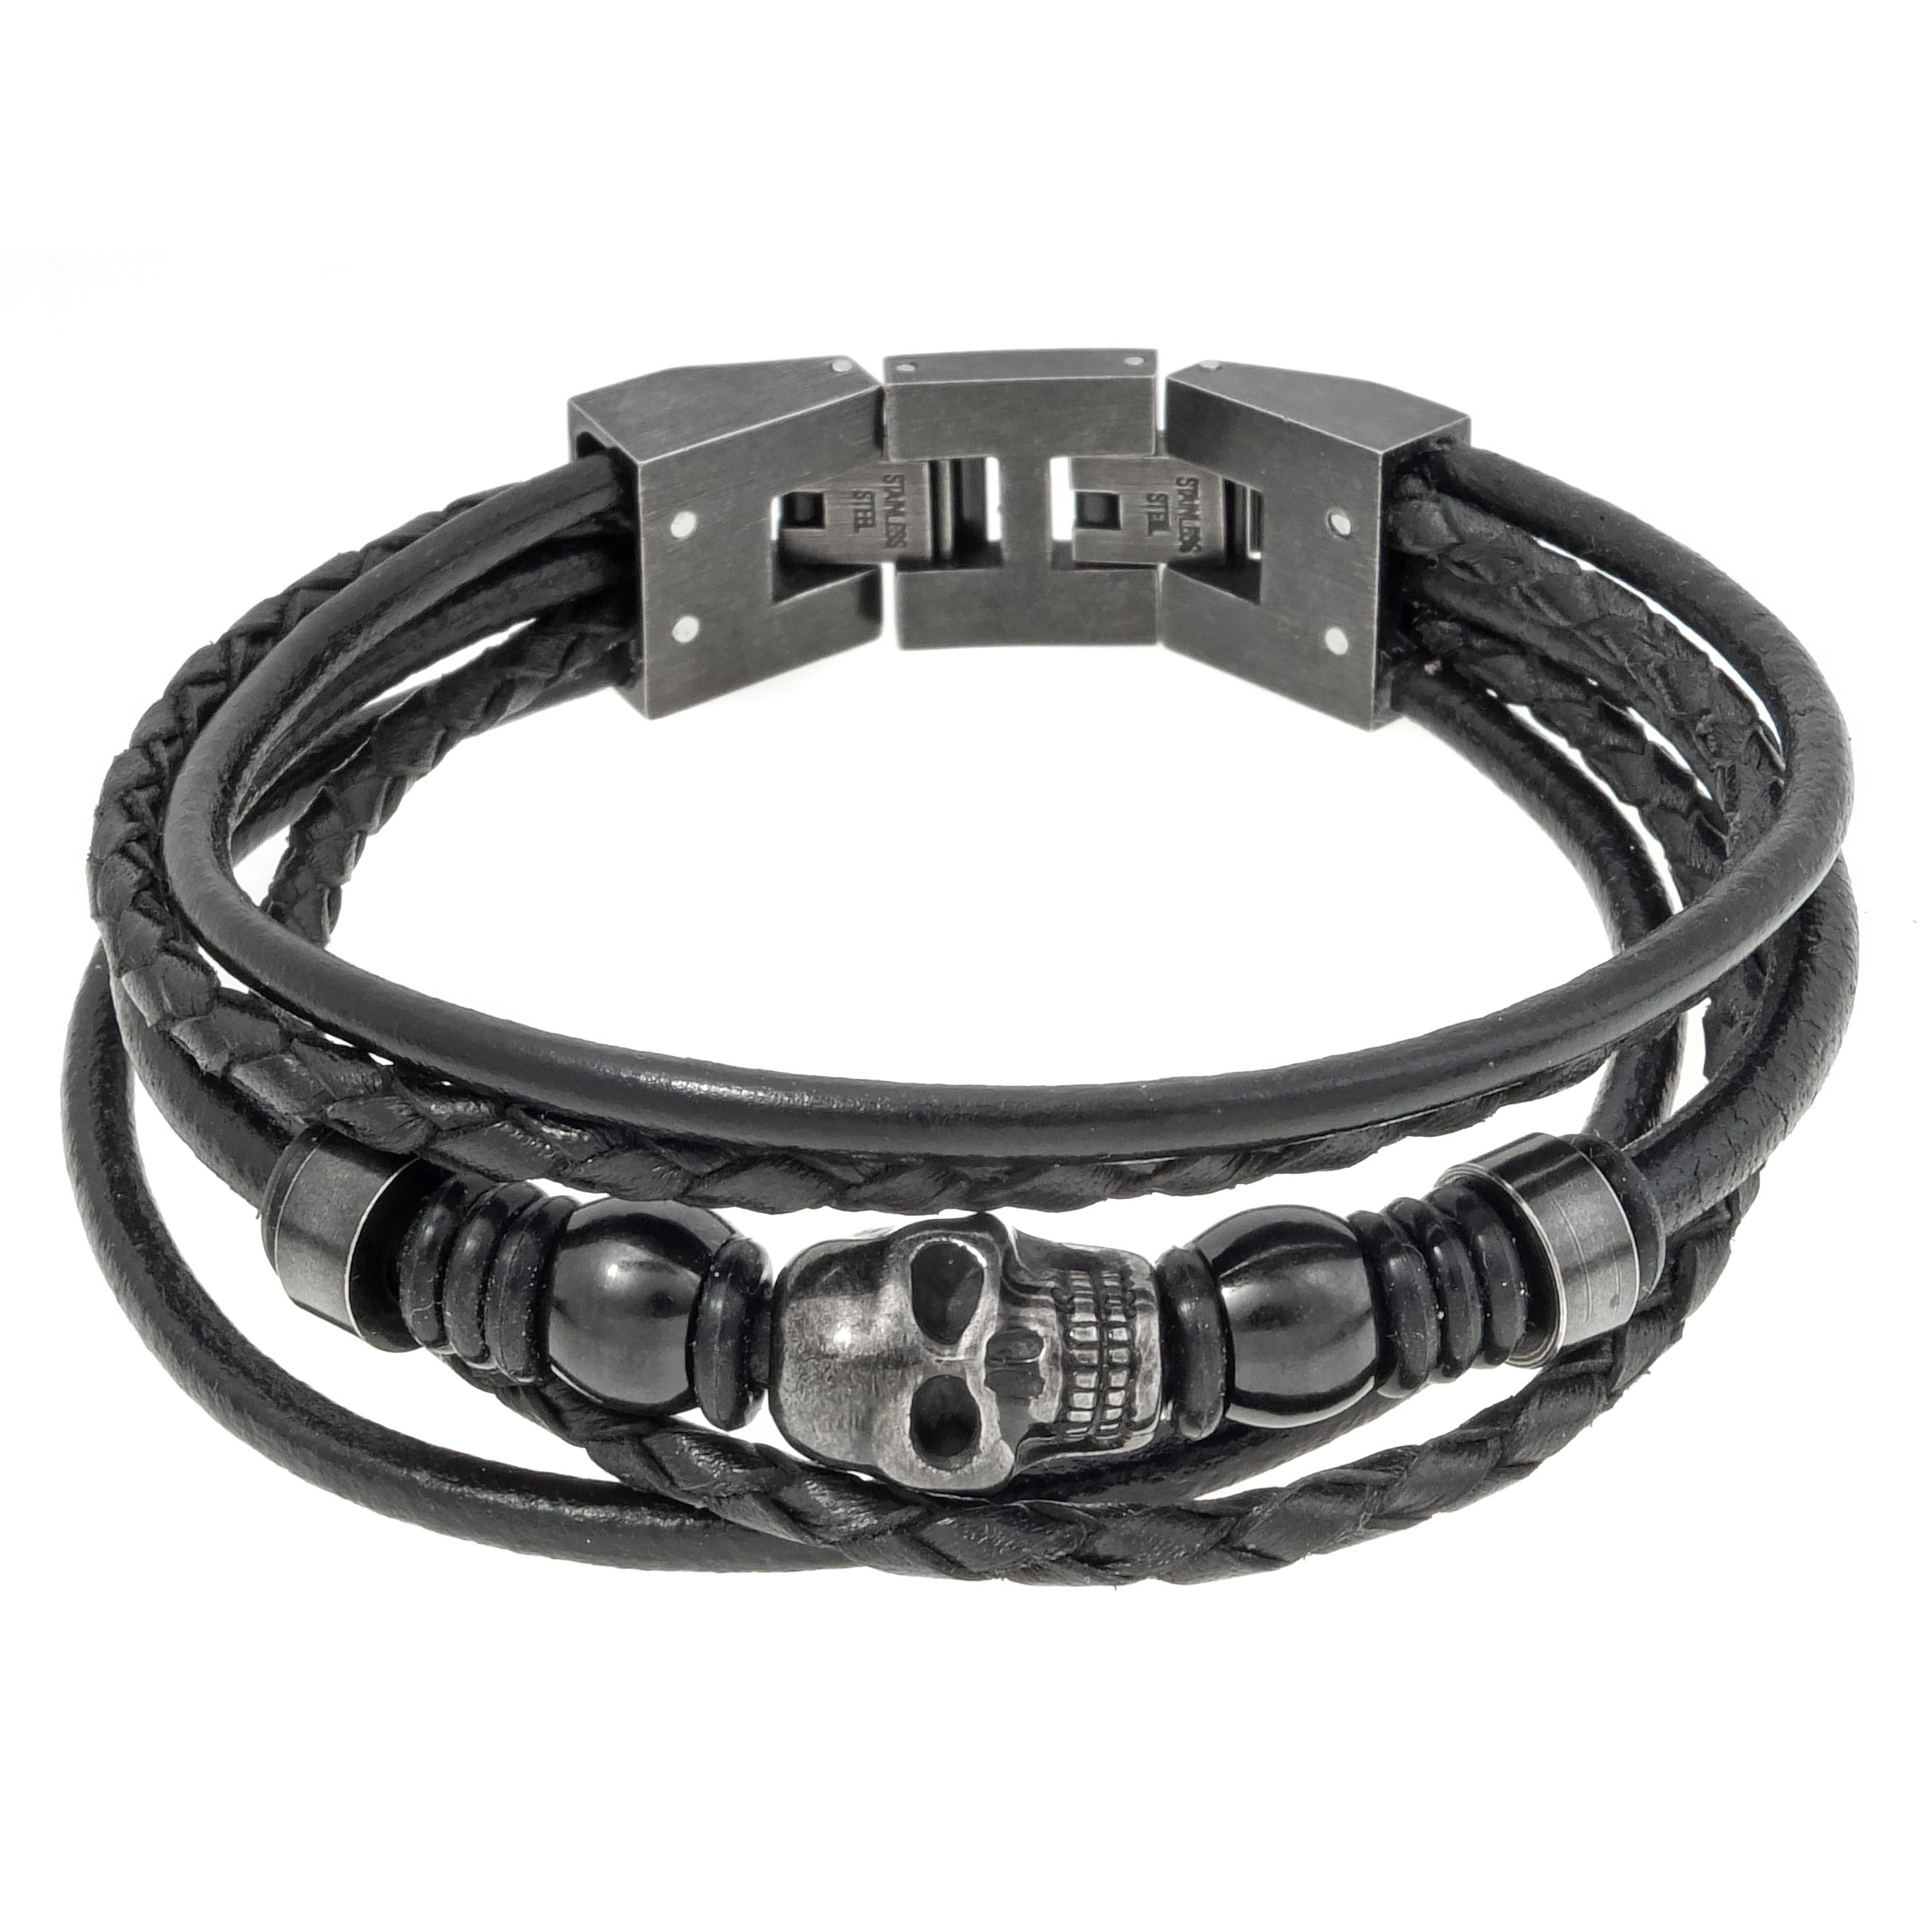 Stainless Steel and Black Leather Skull Bracelet - Free Shipping ...